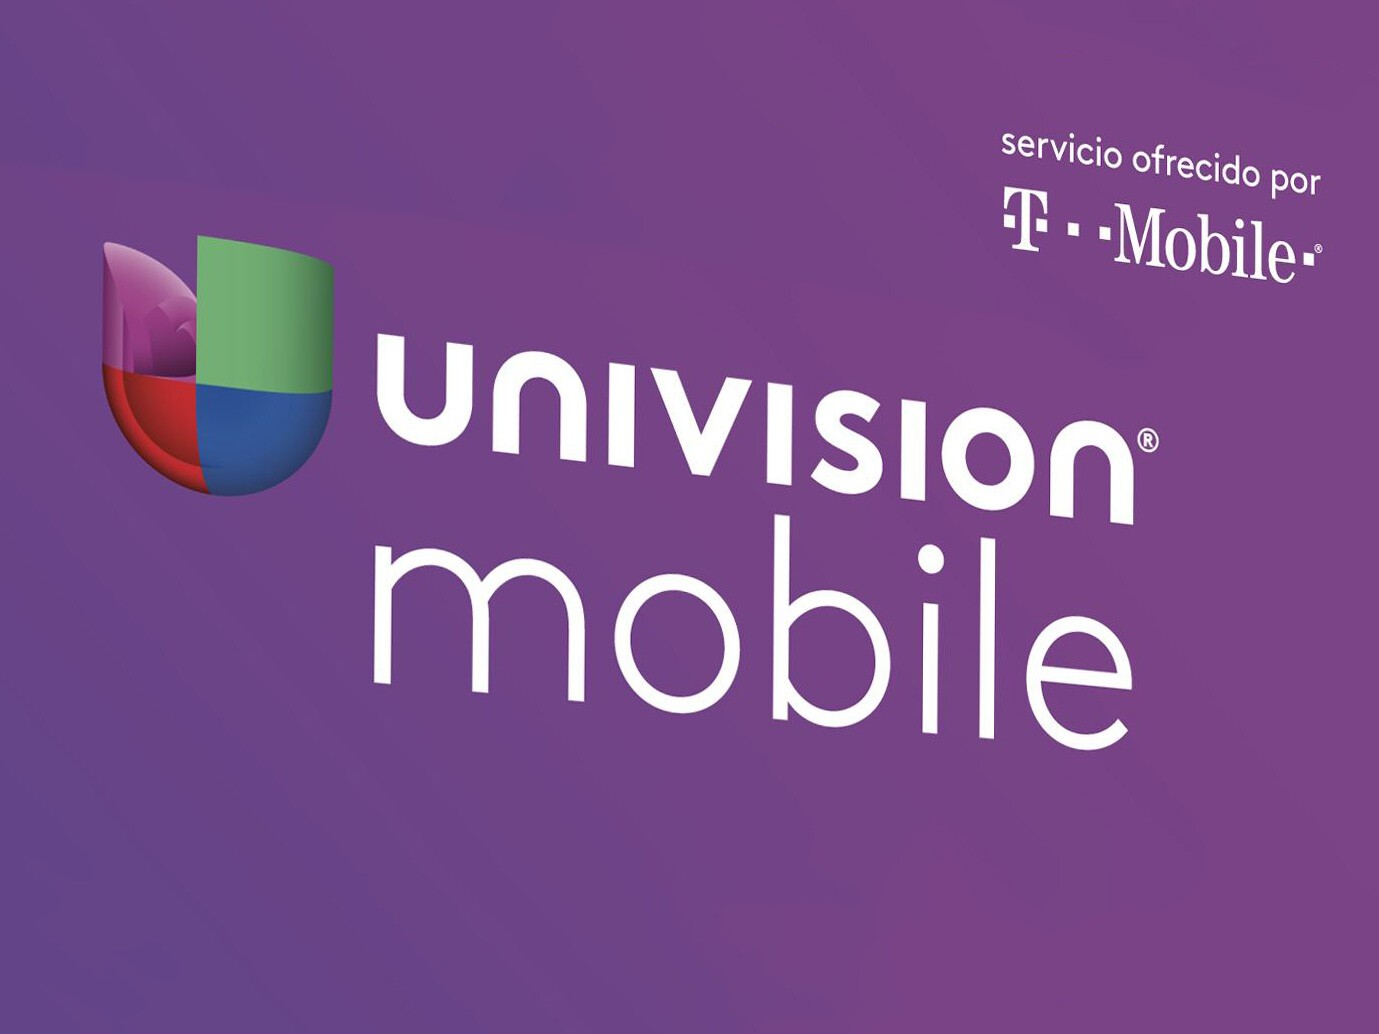 T-Mobile partners with Univision for Hispanic-focused 'Univision Mobile'